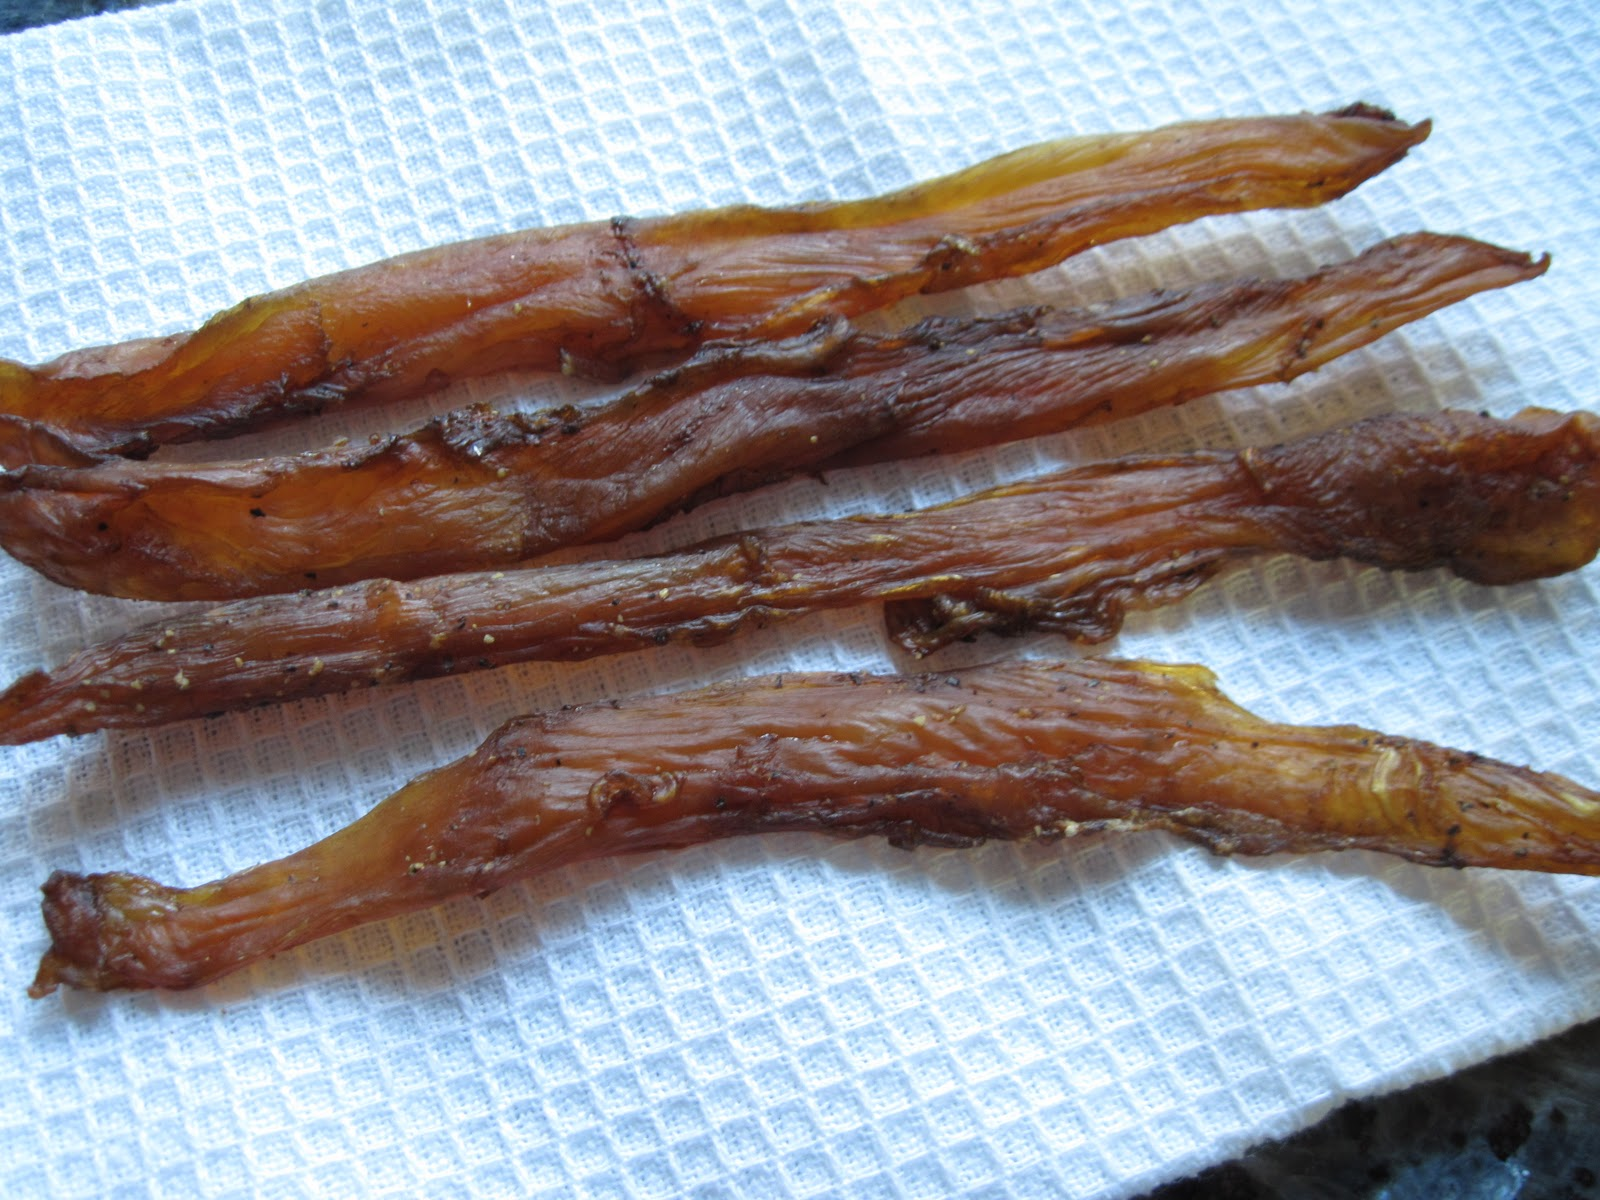 Chicken jerky a recipe yankee kitchen ninja how to make homemade chicken jerky forumfinder Image collections